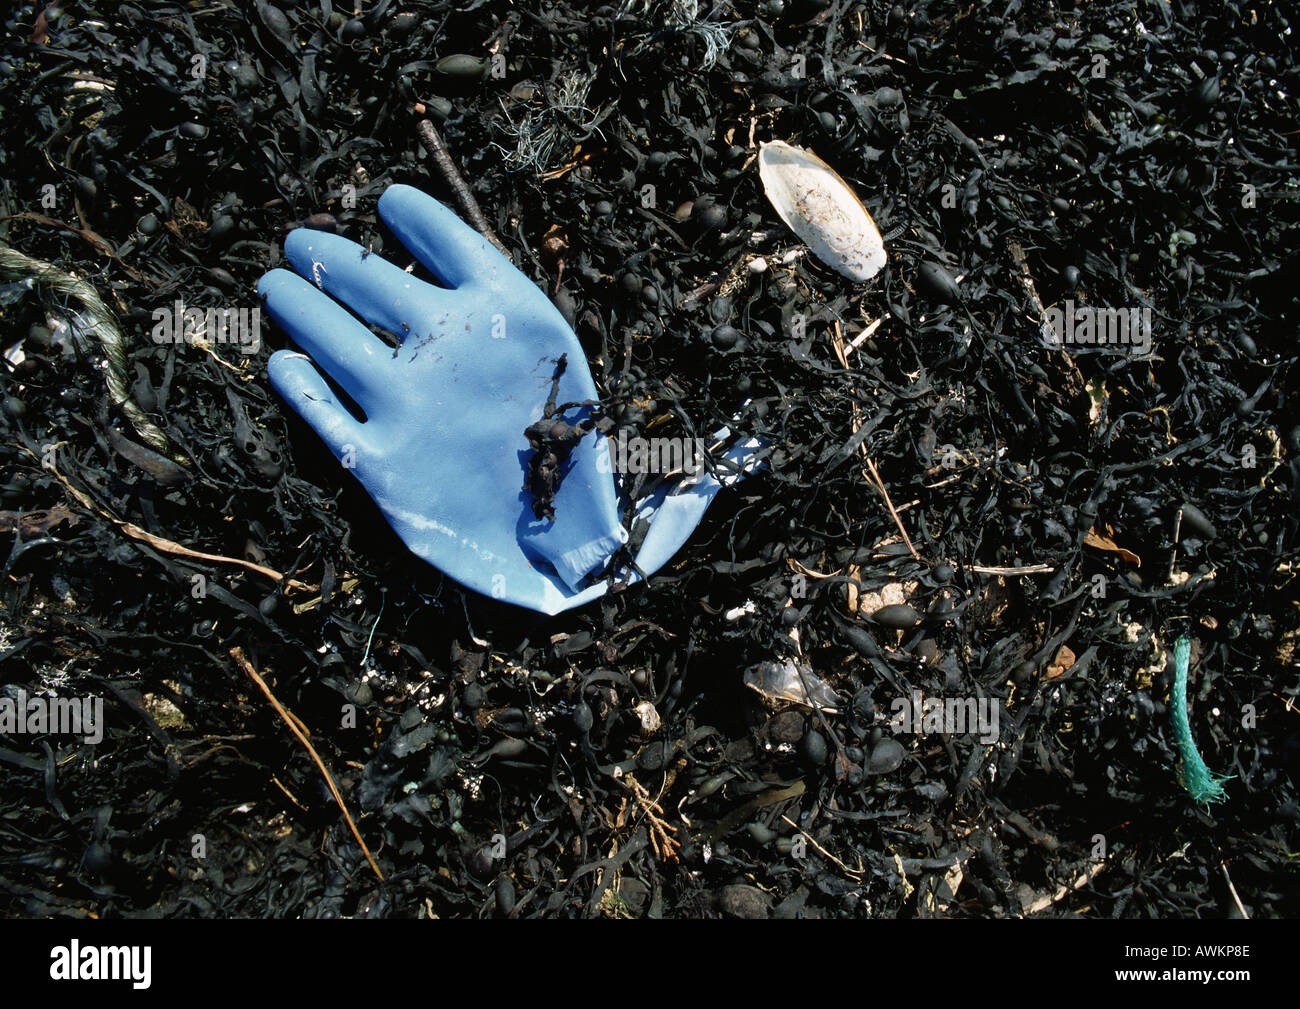 Blue rubber glove and seaweed washed up on beach - Stock Image